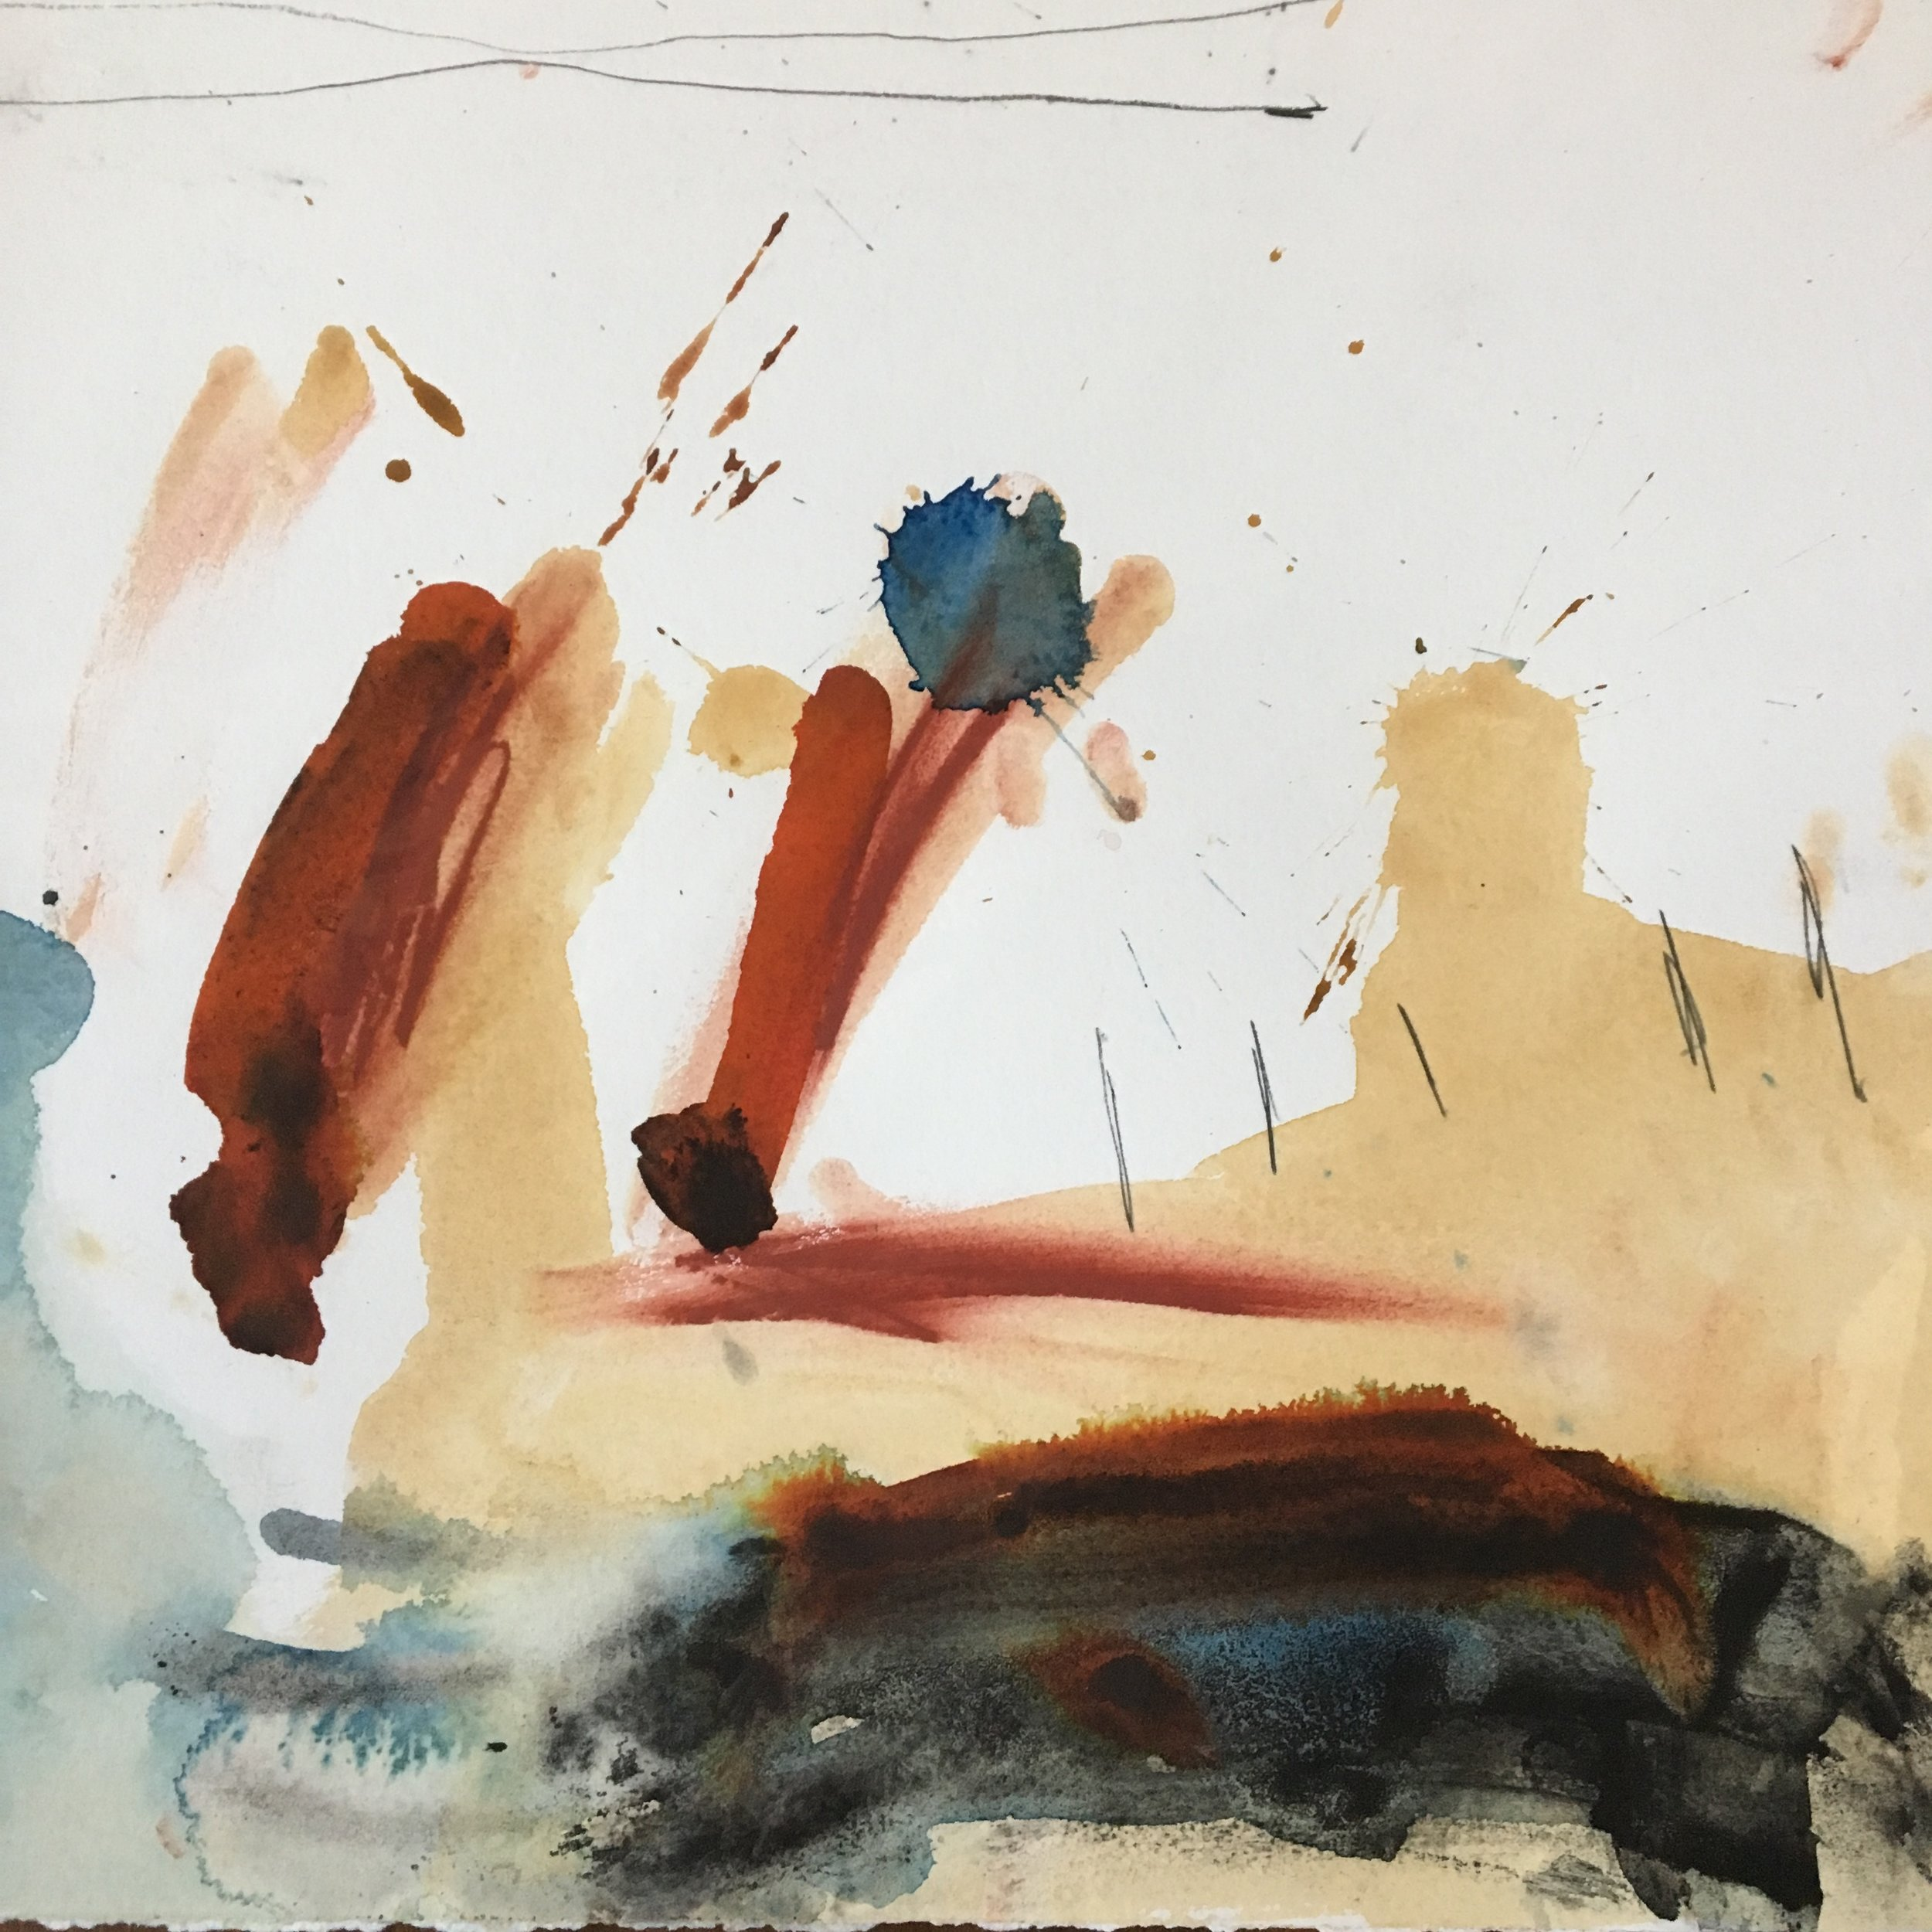 MICHAEL RICH  The Wild Coast II,  2009 mixed media on paper 15 x 16 1/2 in.